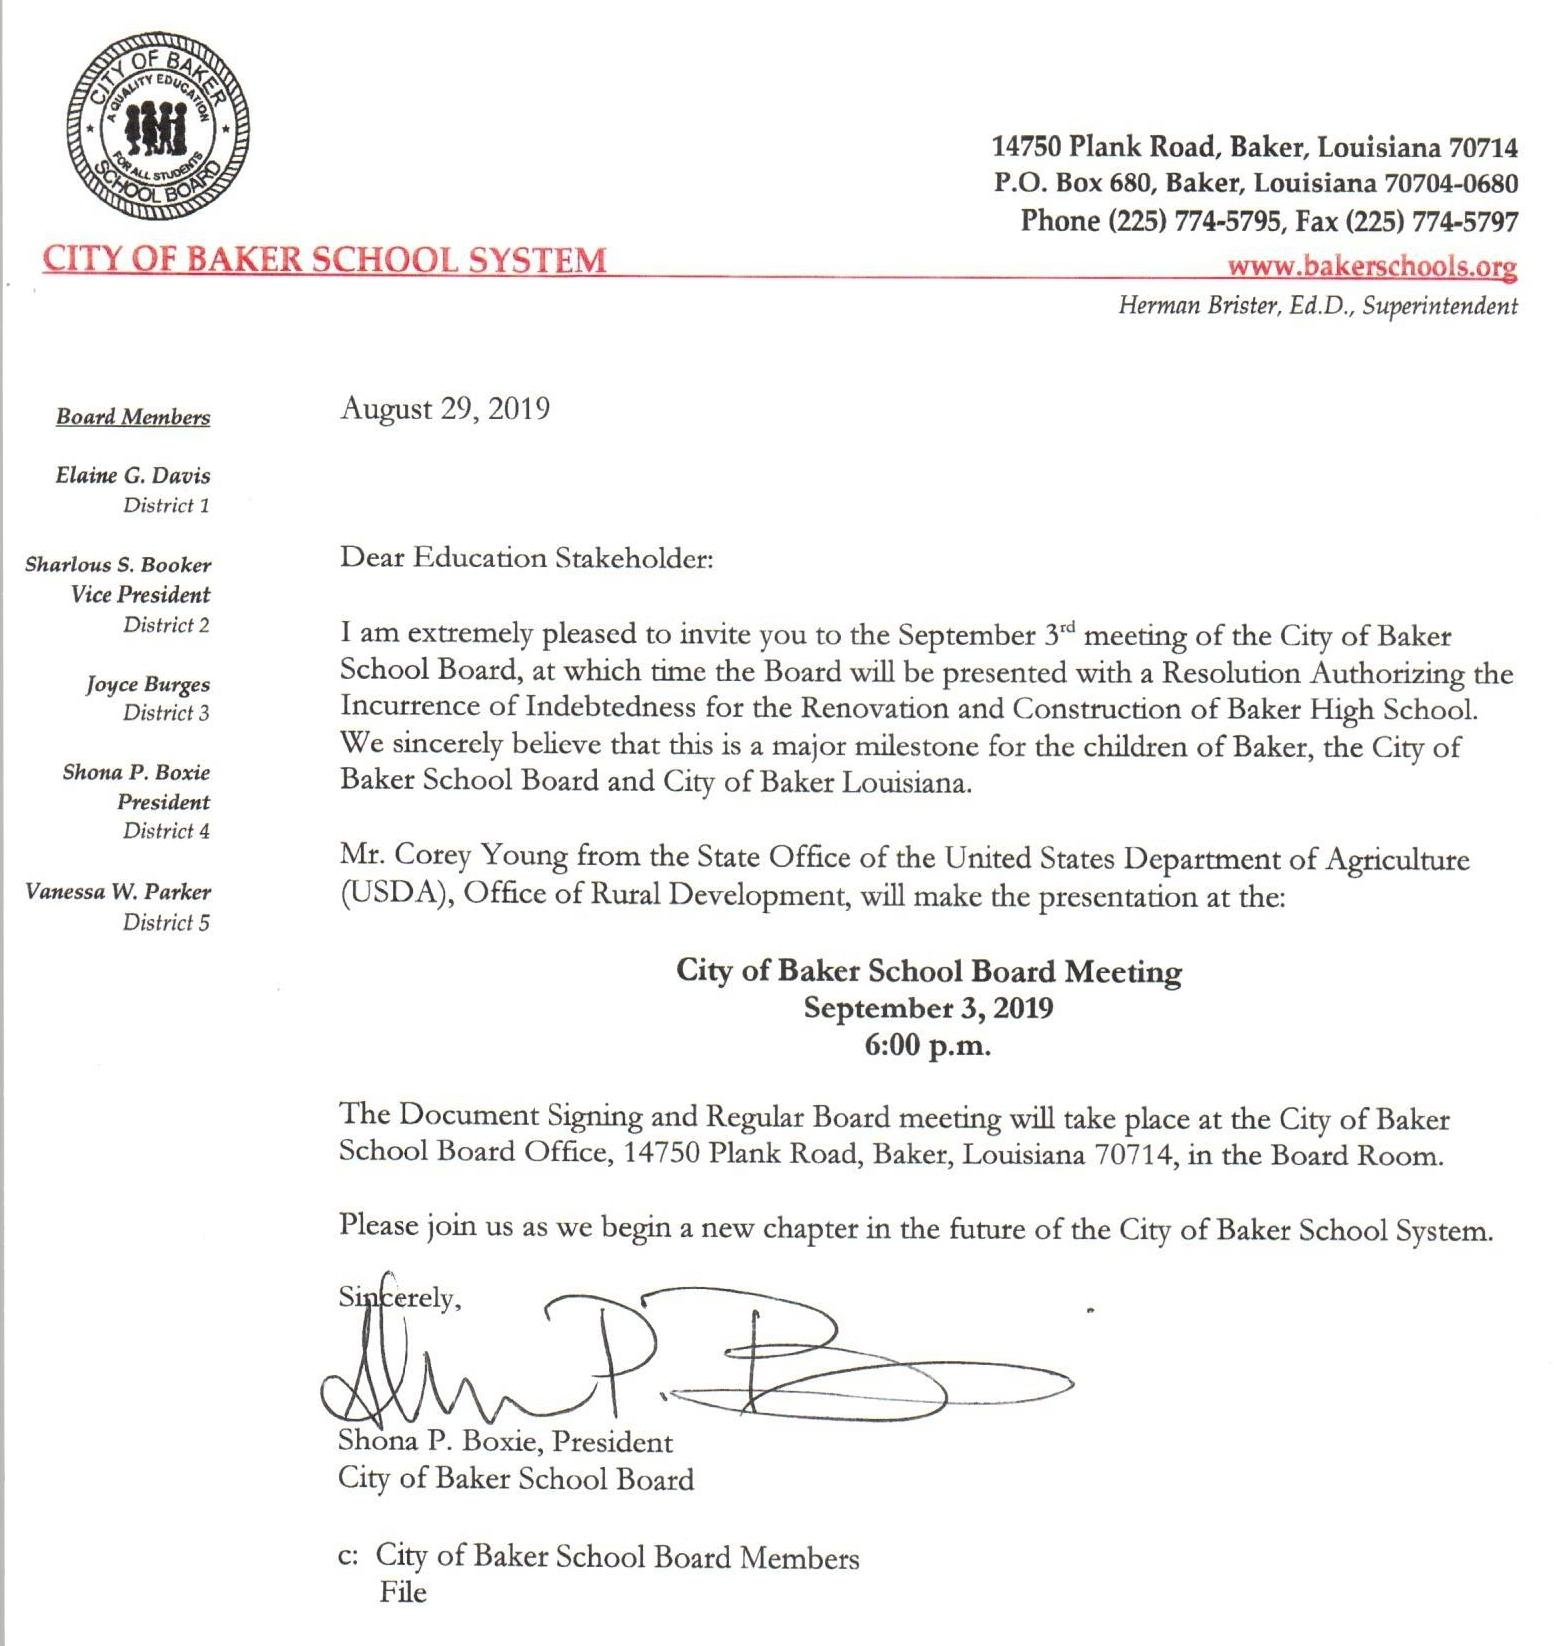 Letter from board president about BHS renovation and construction resolution